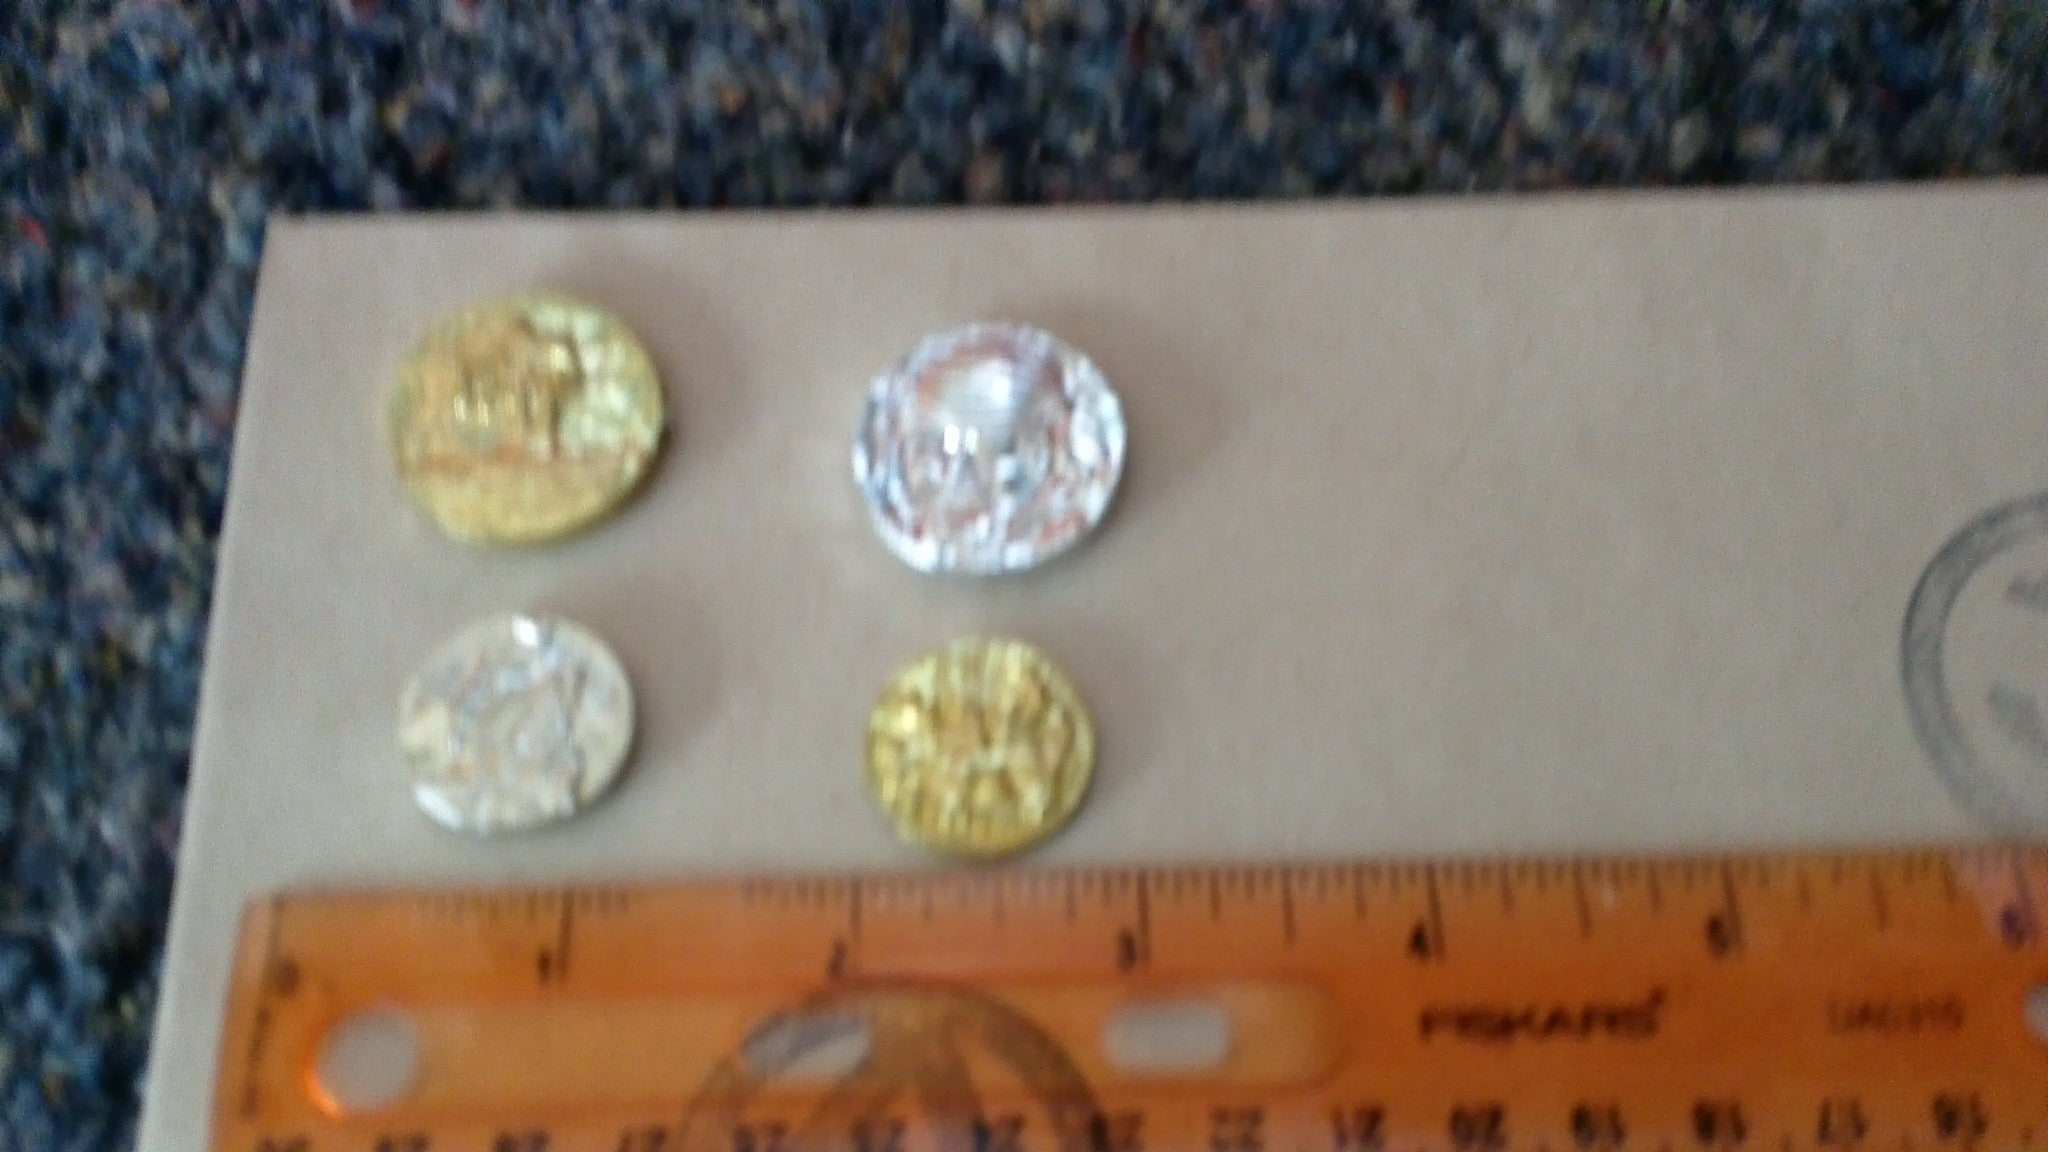 A394 Hasbro Action Man 40th Anniversary Treasure Chest Coins 4 different coins New!